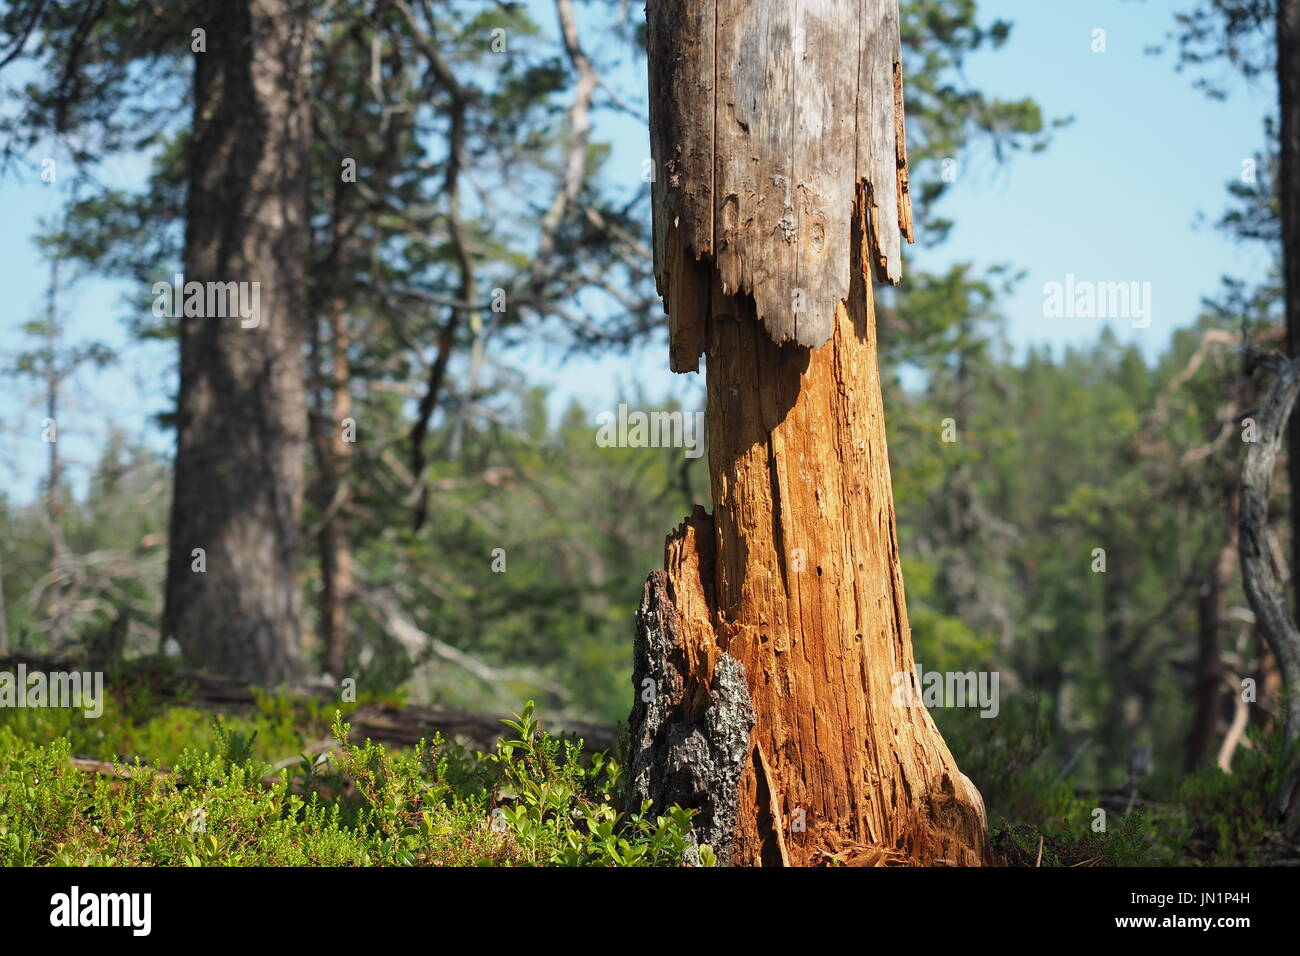 Worn out tree in Kuusamo, Finland - Stock Image